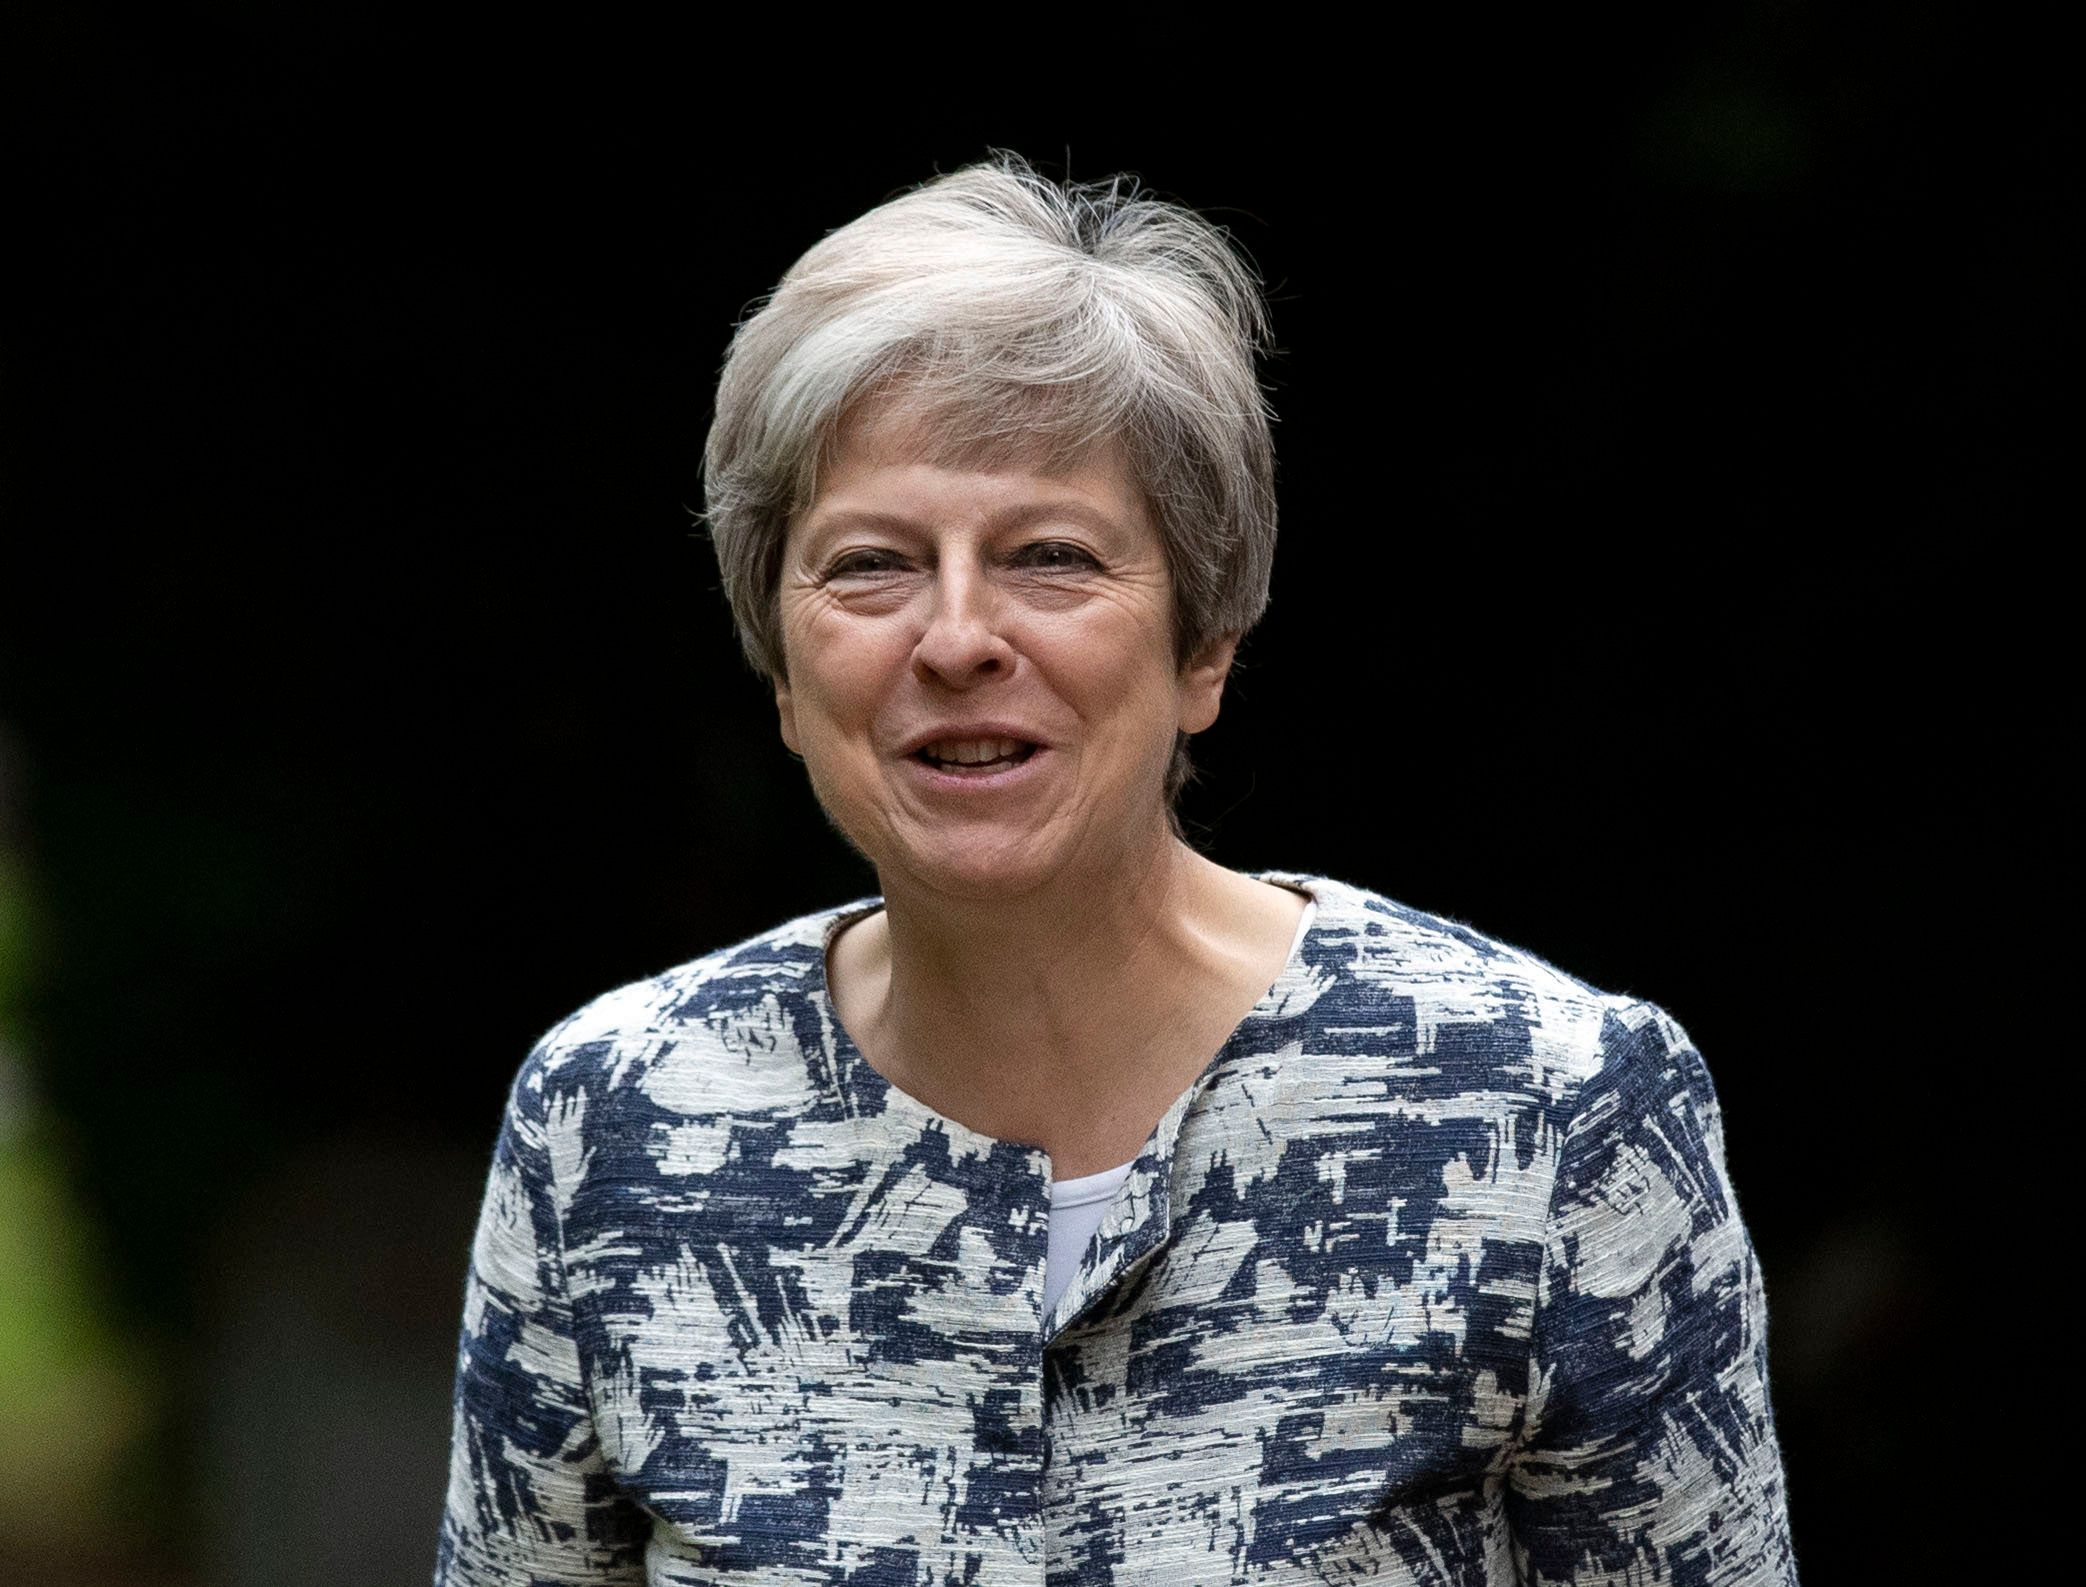 Back To School For Theresa May – And Brexit Is The Biggest Test This Term